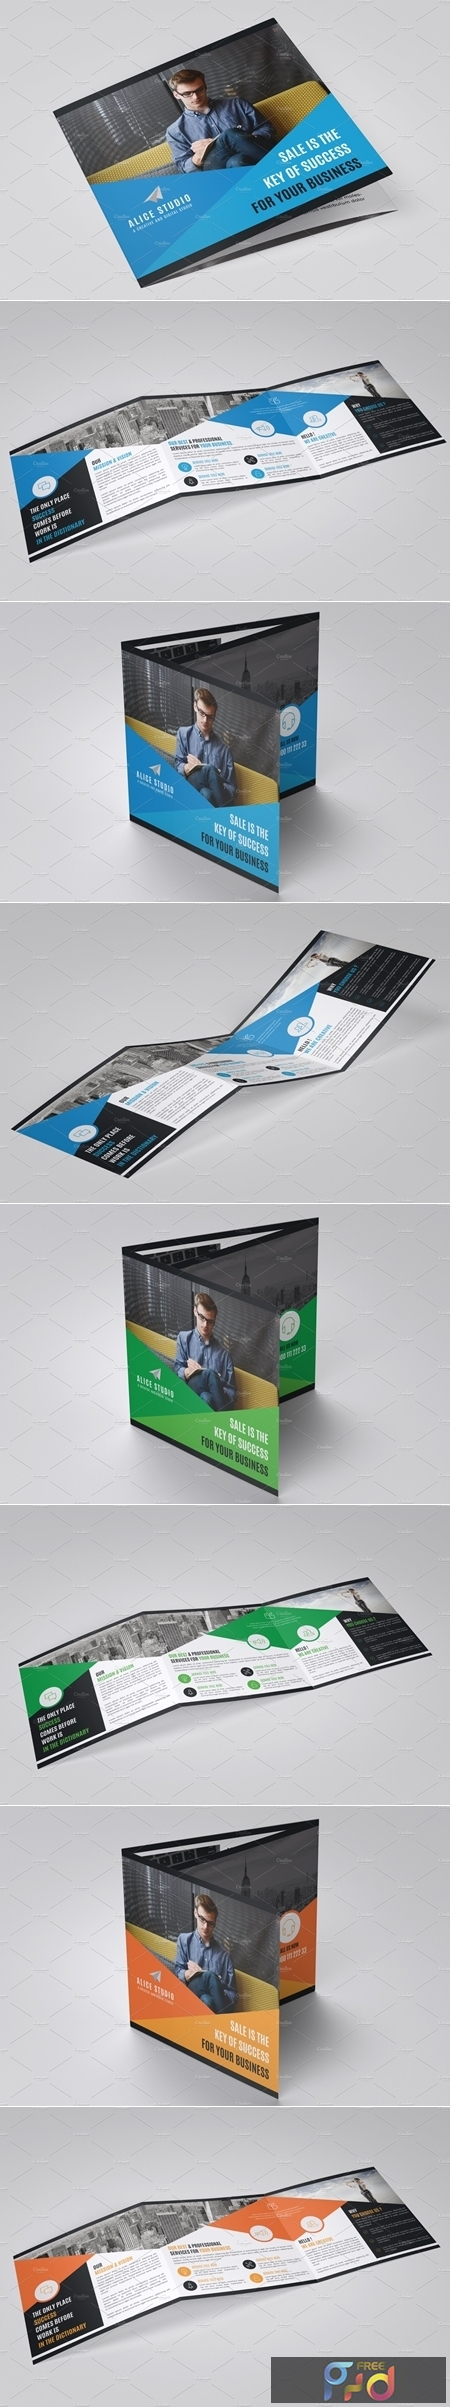 Square Trifold Brochure Template 4242475 1